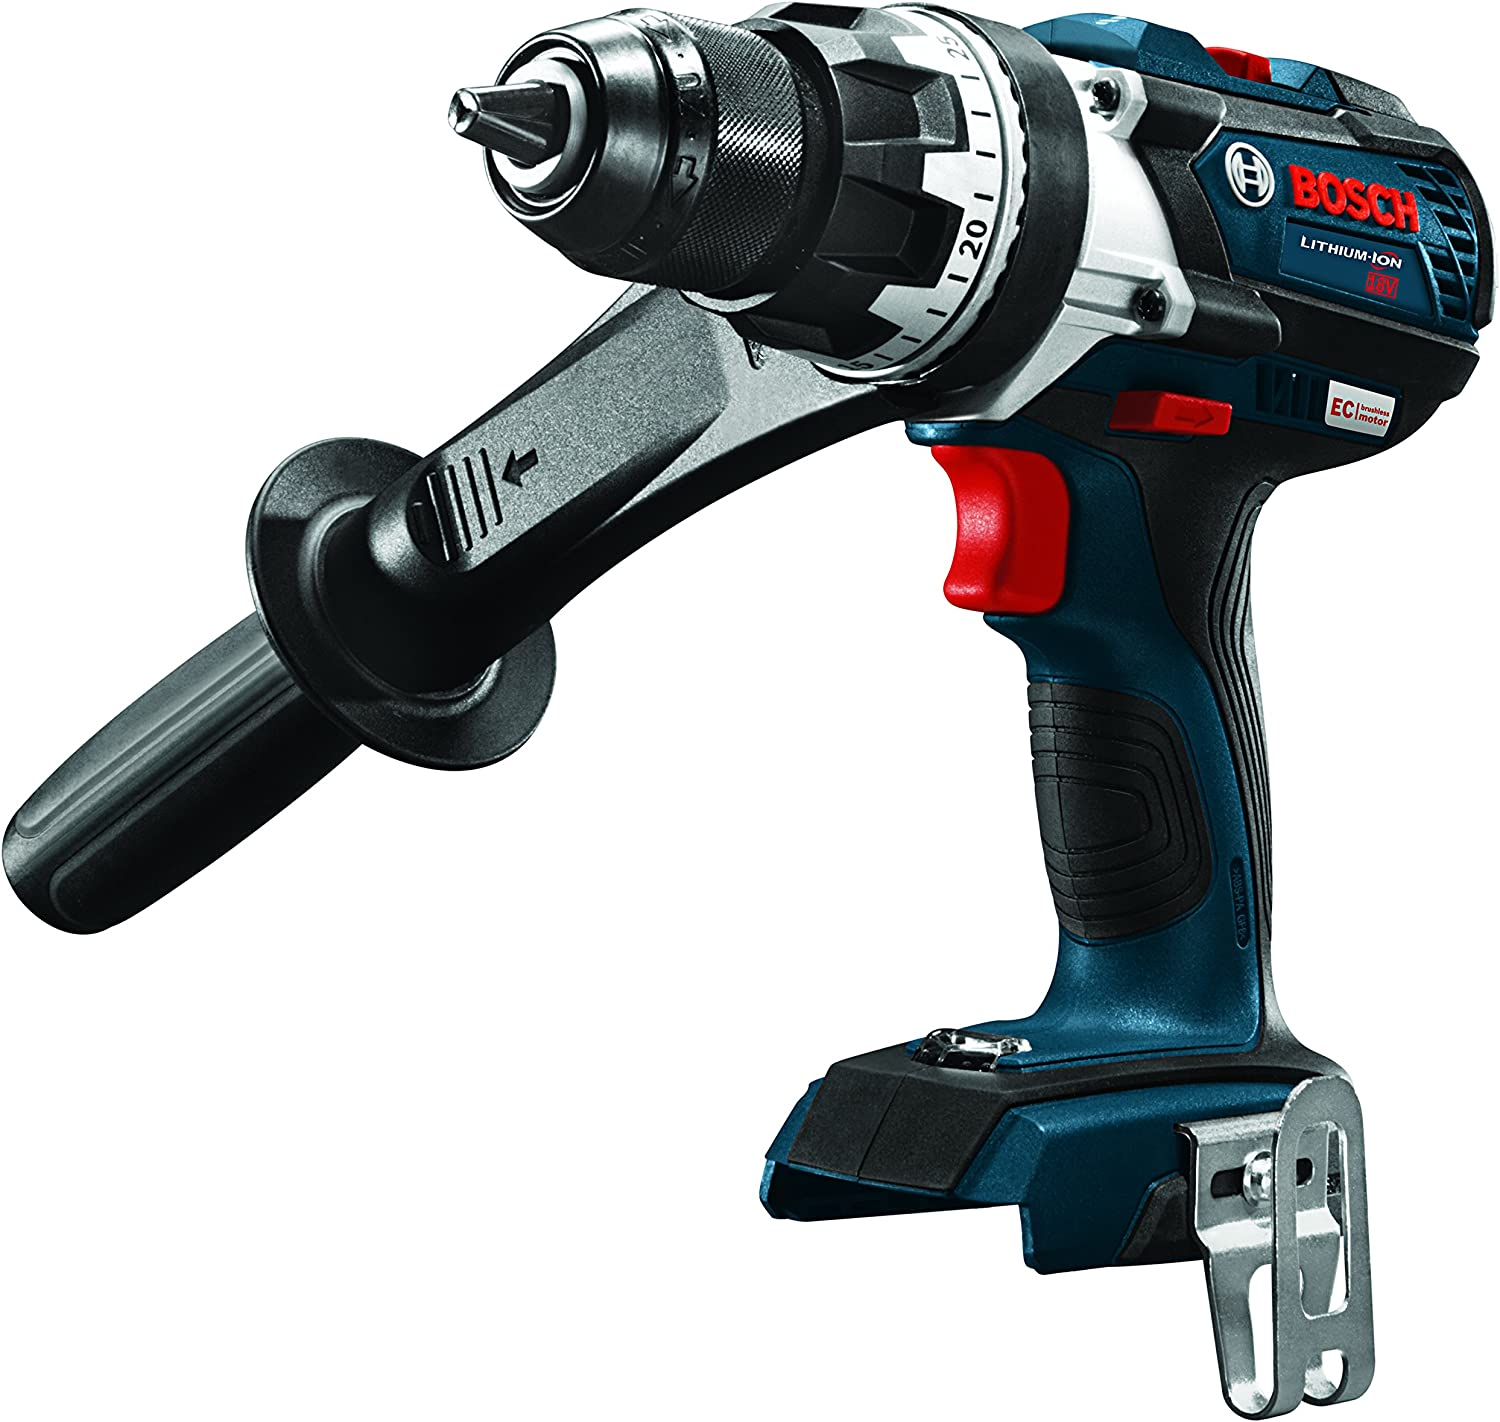 Bosch DDH183B Bare-Tool 18V Lithium-Ion Brushless Brute Tough 1 2 Drill Driver